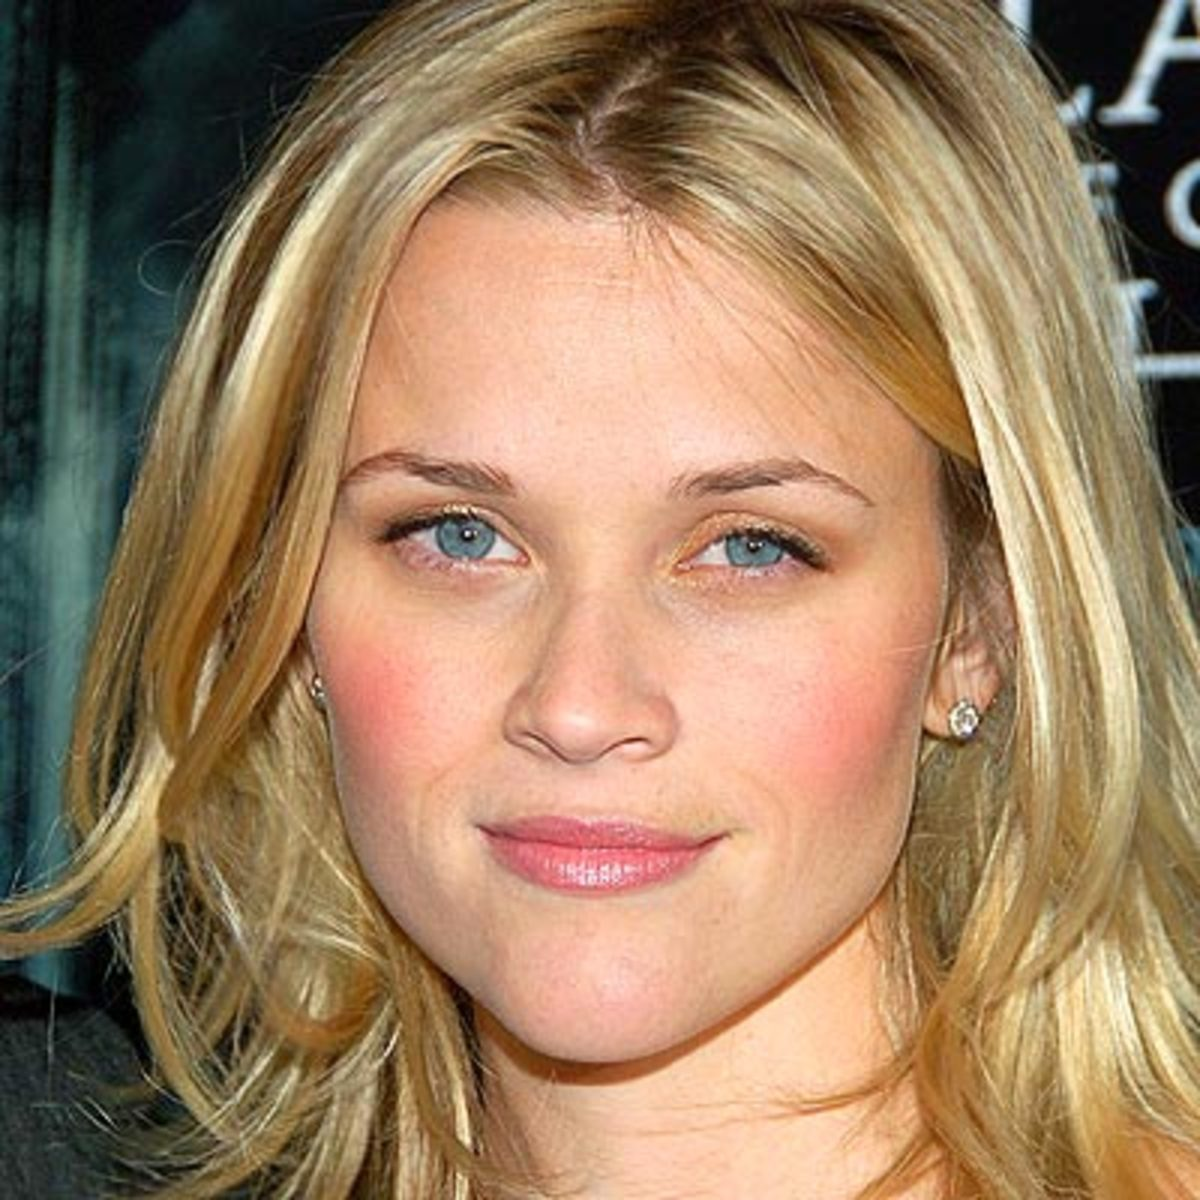 Reese Witherspoon's eyebrows appear small and take the emphasis from her eyes away, creating a focal point in the center of her face.